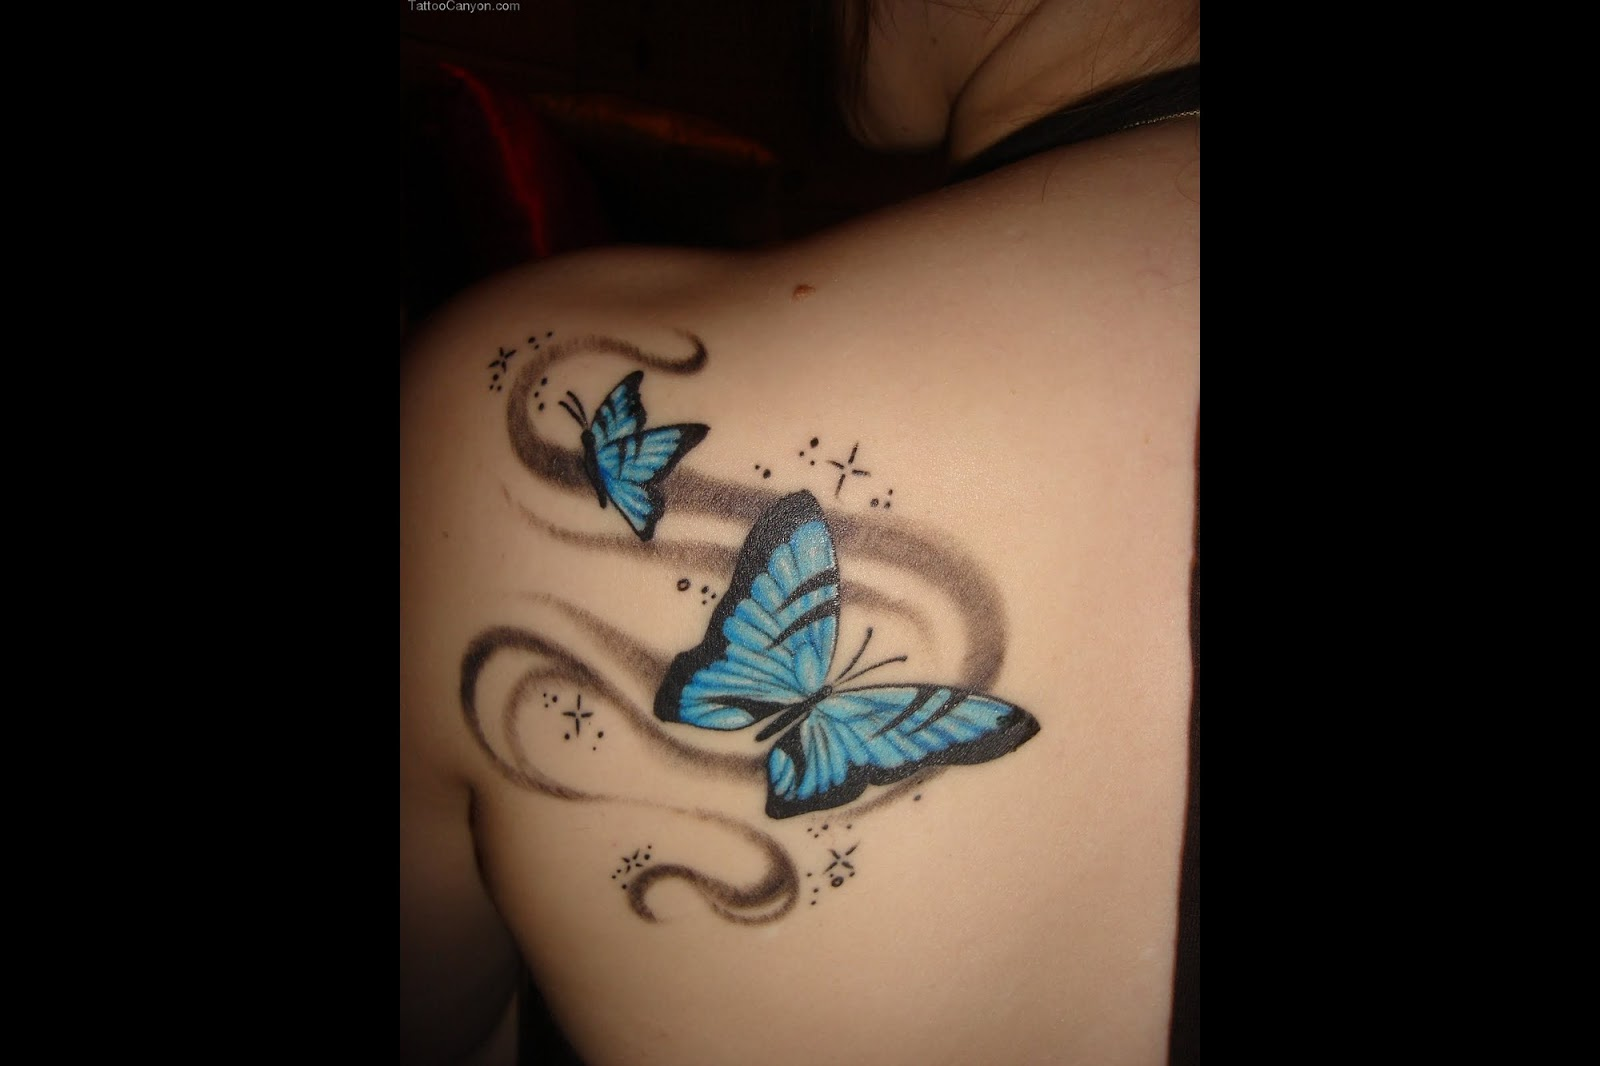 beautiful tattoos images reverse search. Black Bedroom Furniture Sets. Home Design Ideas